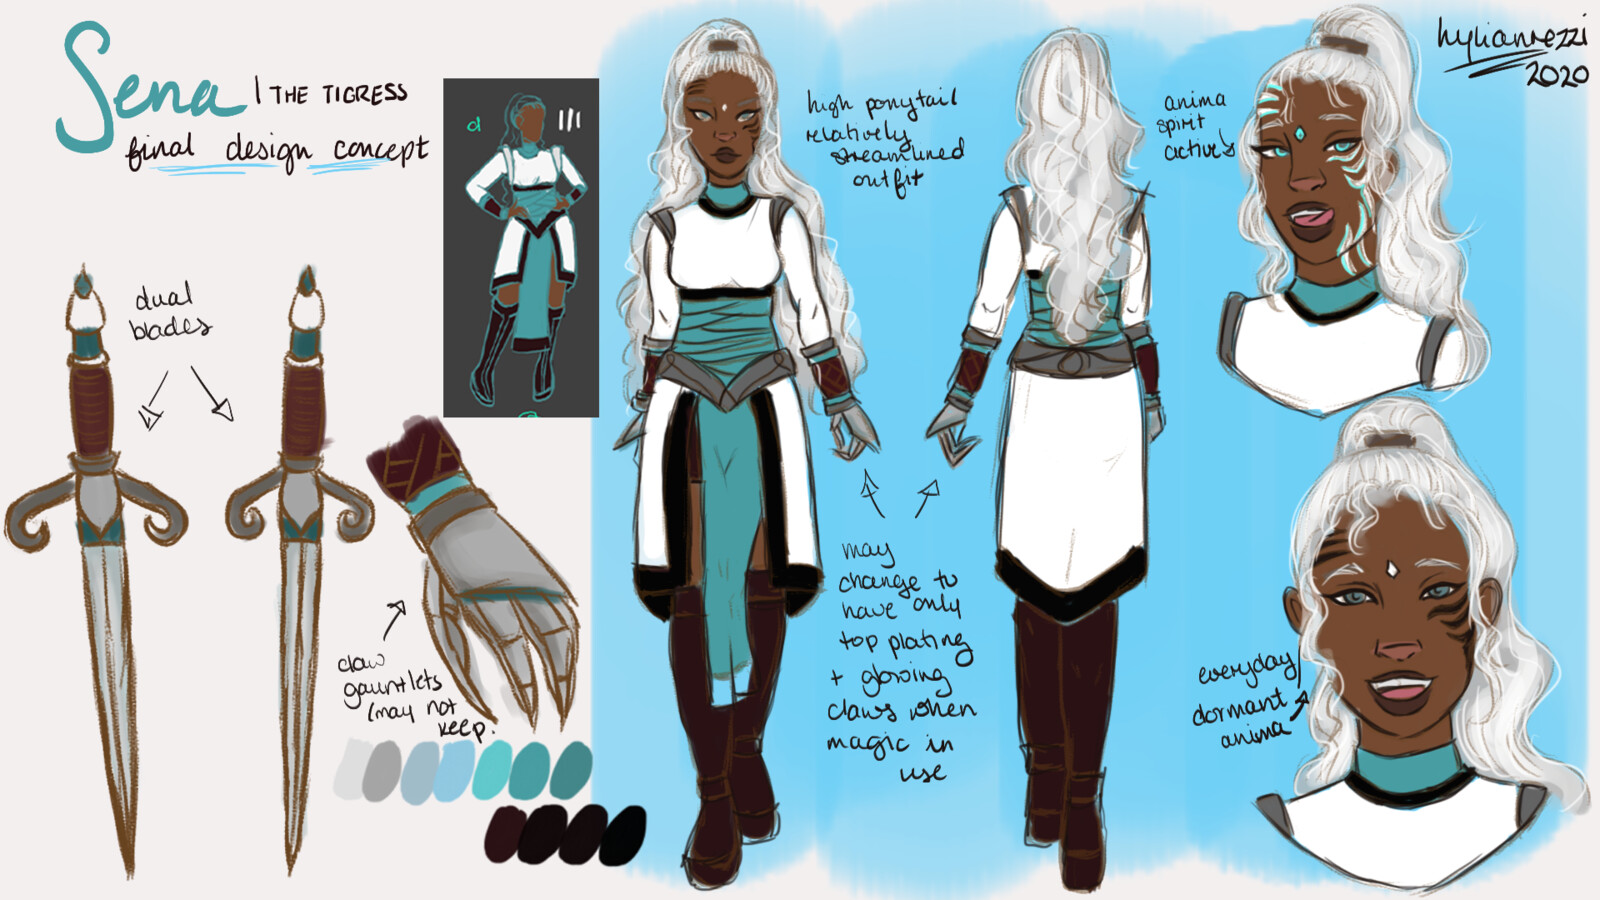 this is the design I ended up choosing  I figured that having a shorter silhouette would be suitable because she's a rather active person